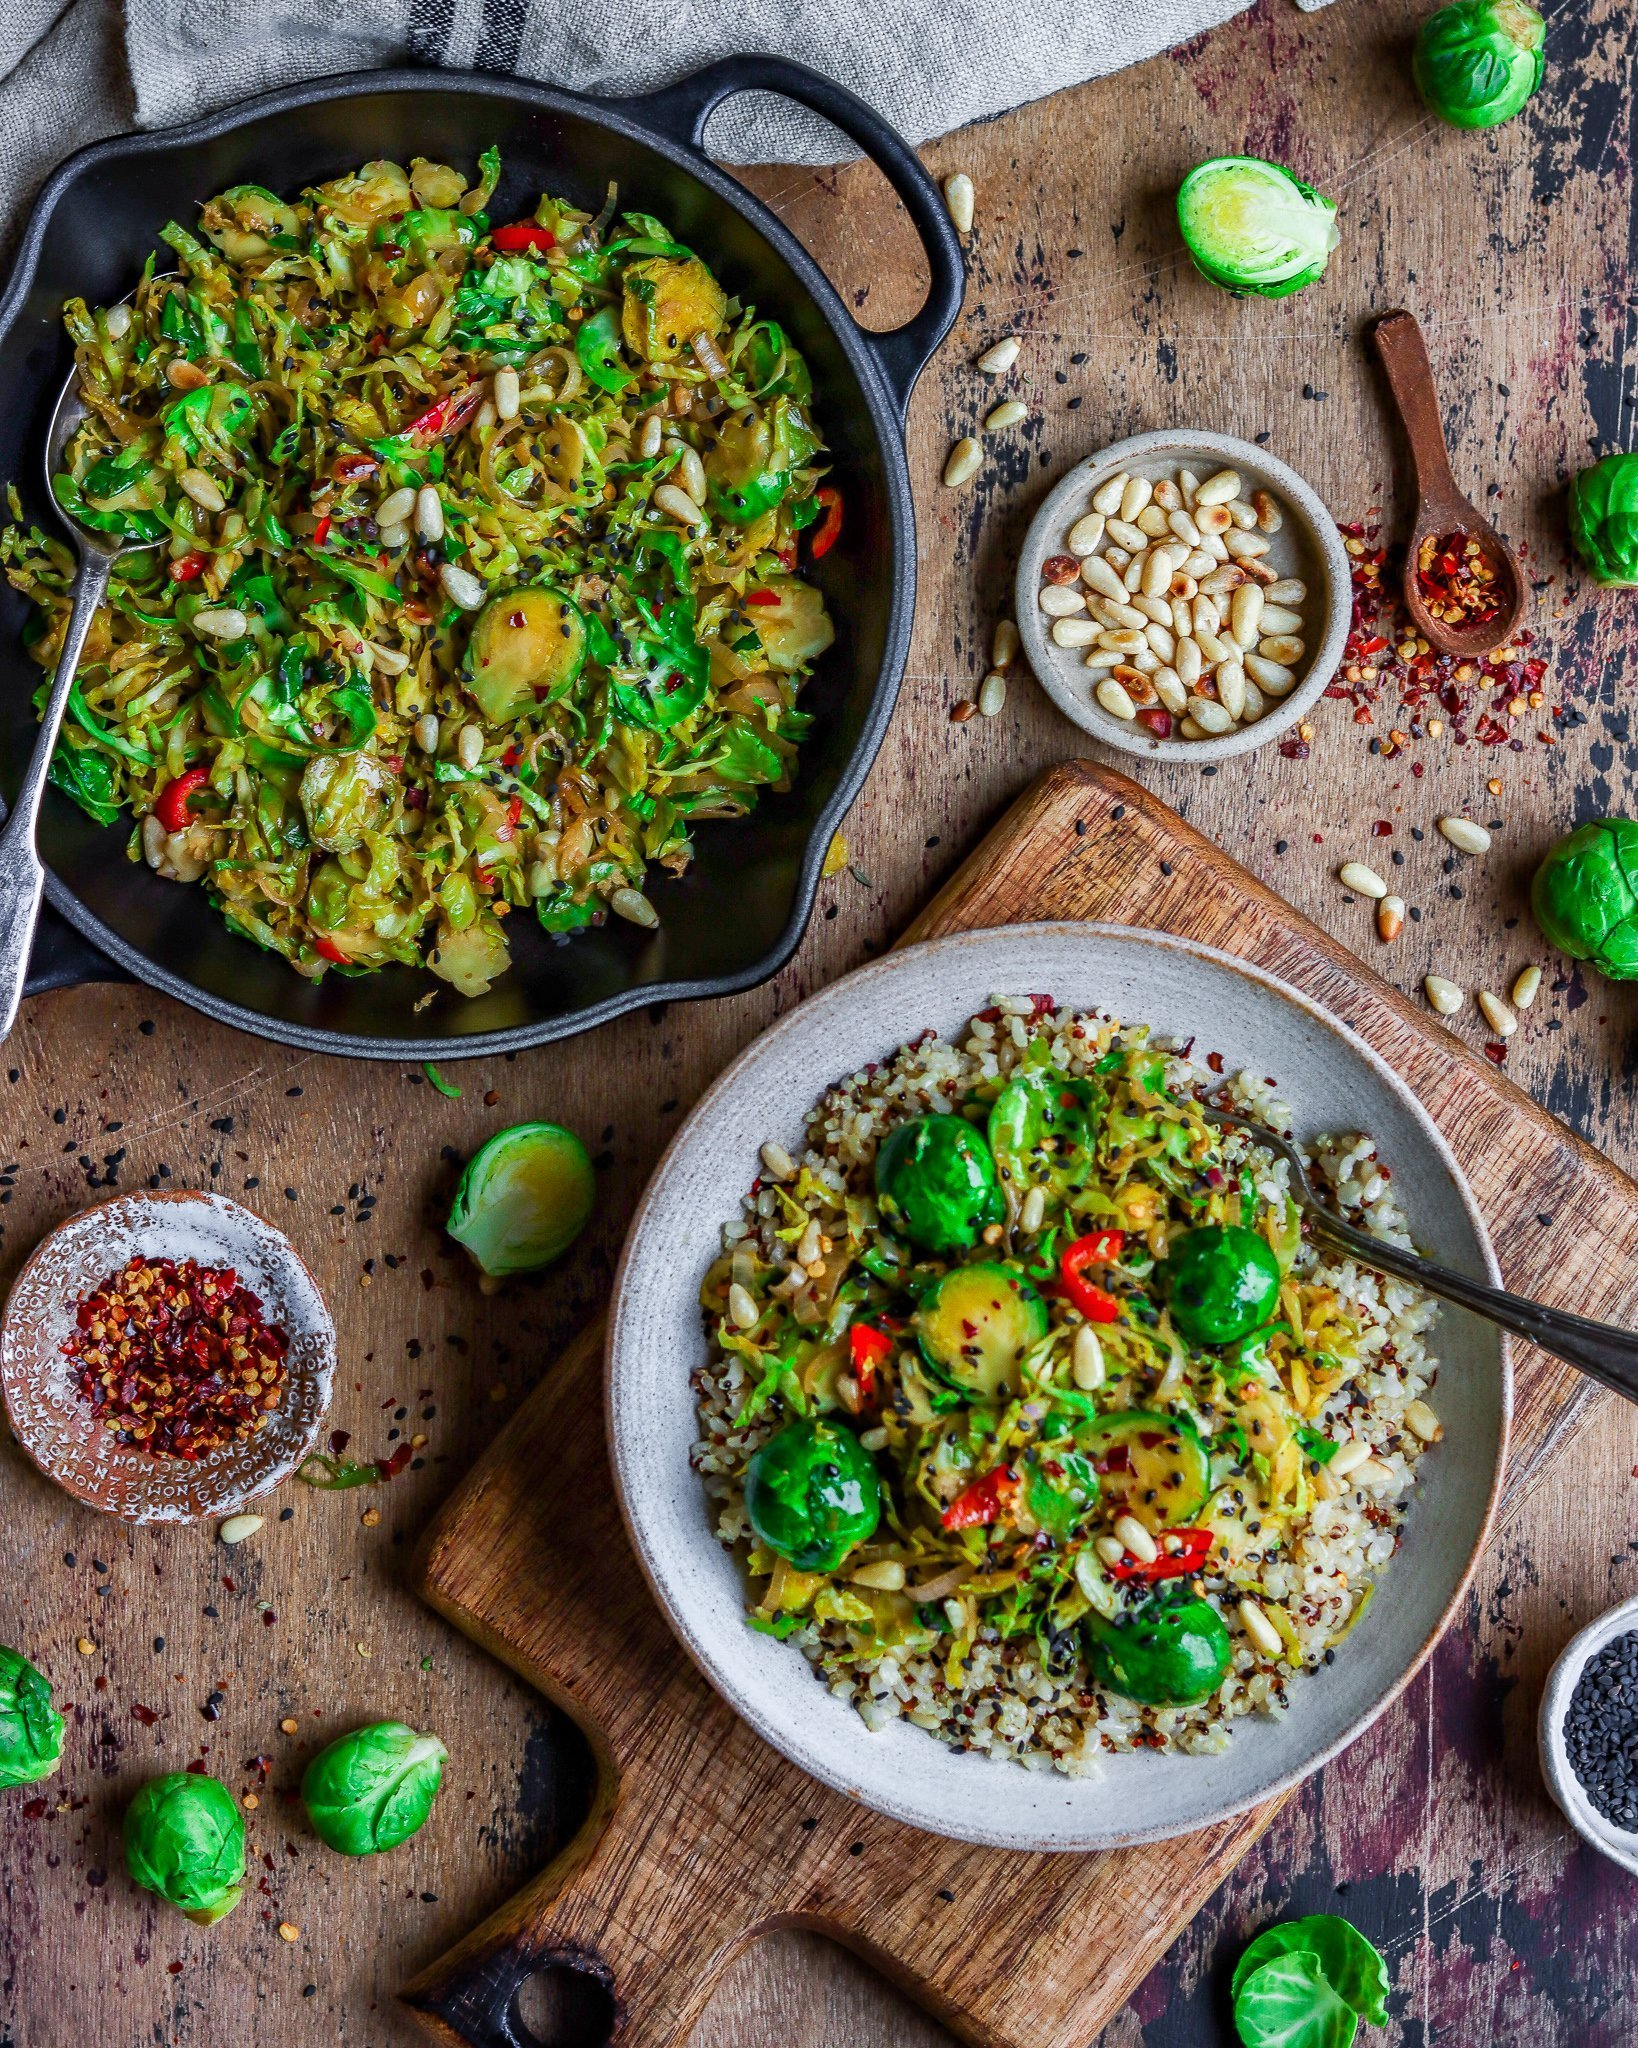 Ginger & Miso Brussel Sprouts